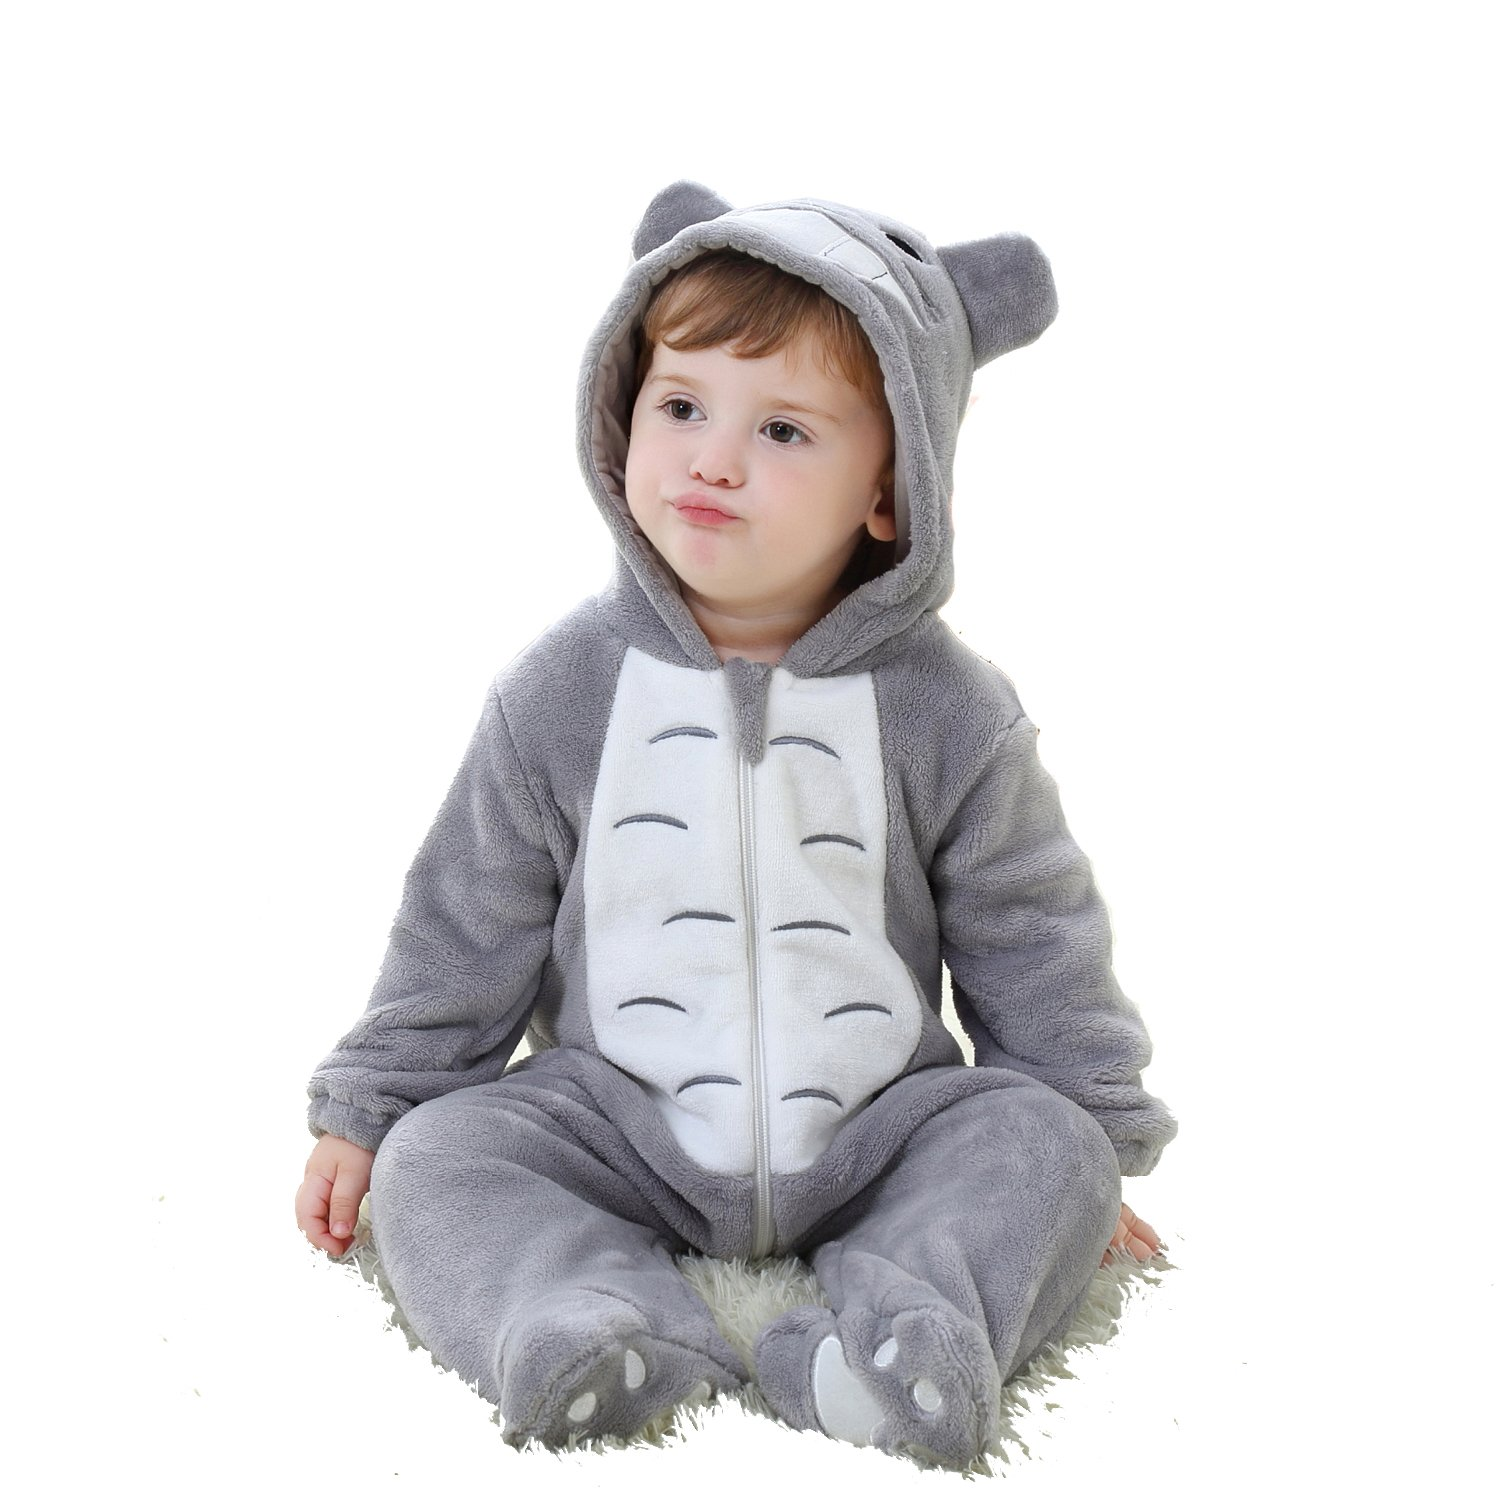 7049a397e CANDIDO Toddlers Pajamas Unisex Baby Cosplay Animal Onesie Romper ...